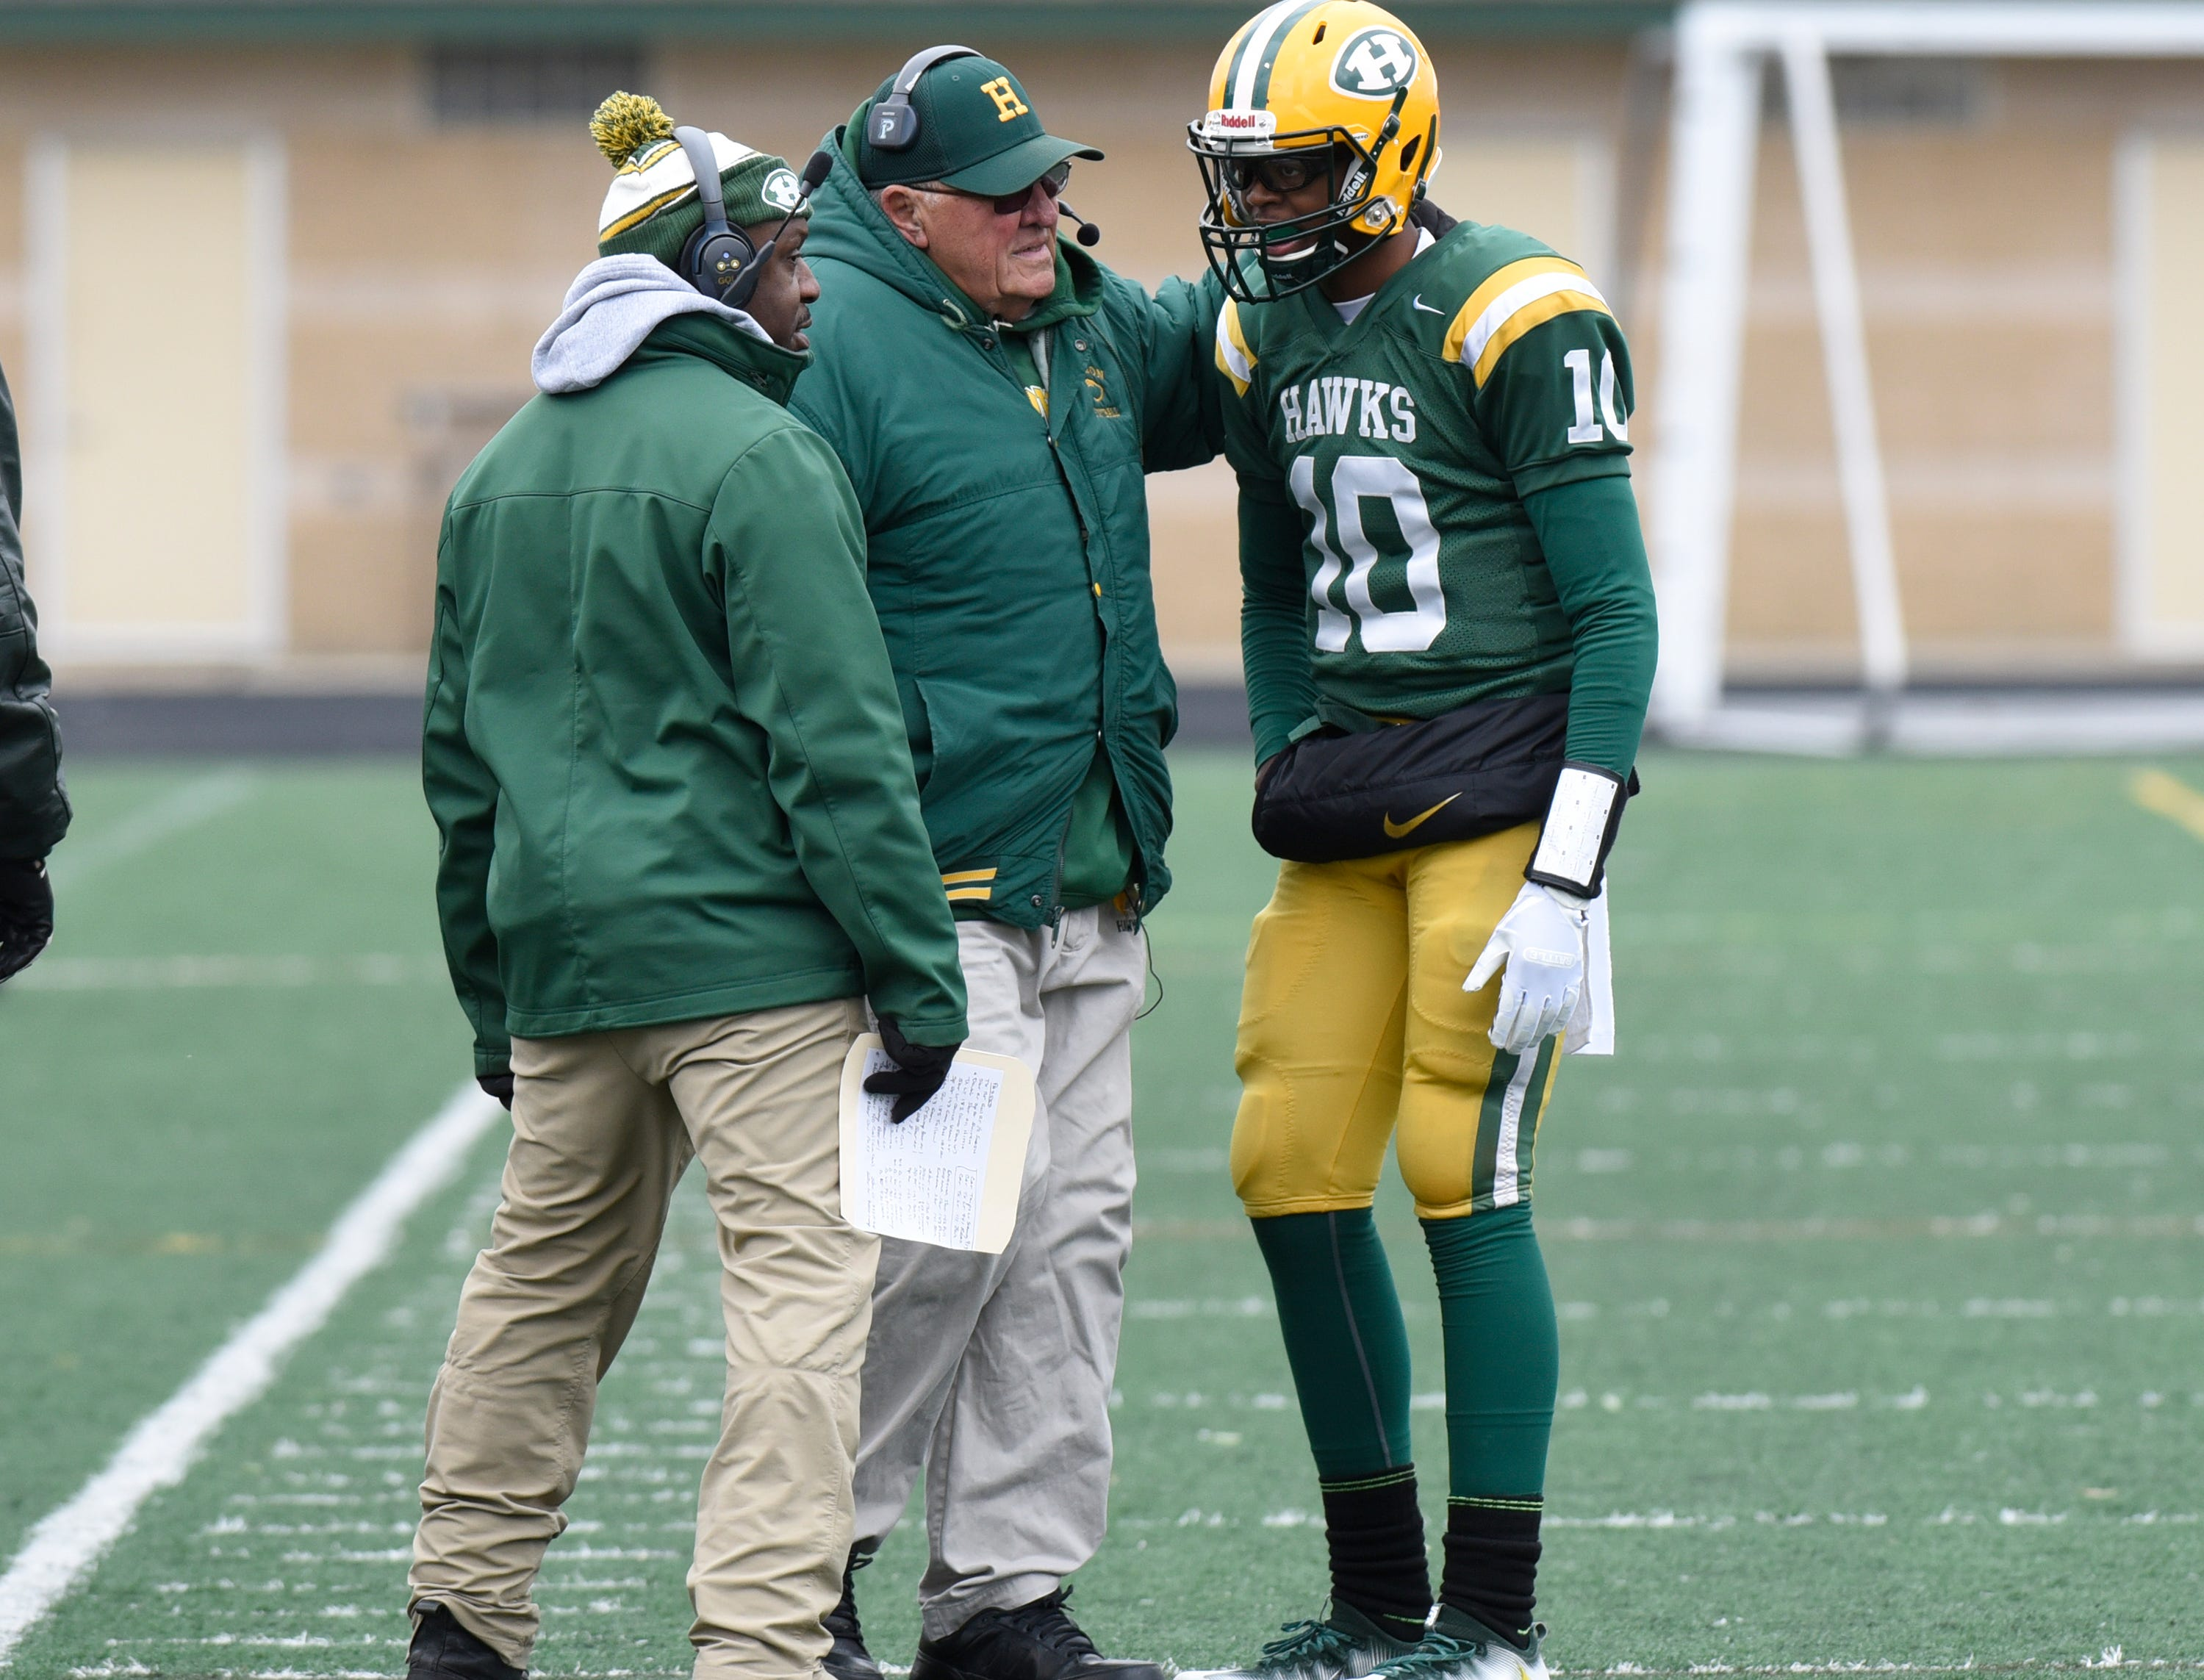 Farmington Harrison Head Coach John Herrington gives a play to Farmington Harrison QB Keel Watson (10) during first half of the Division 4 regional final against Chelsea played at Buller Field Nov. 10, 2018